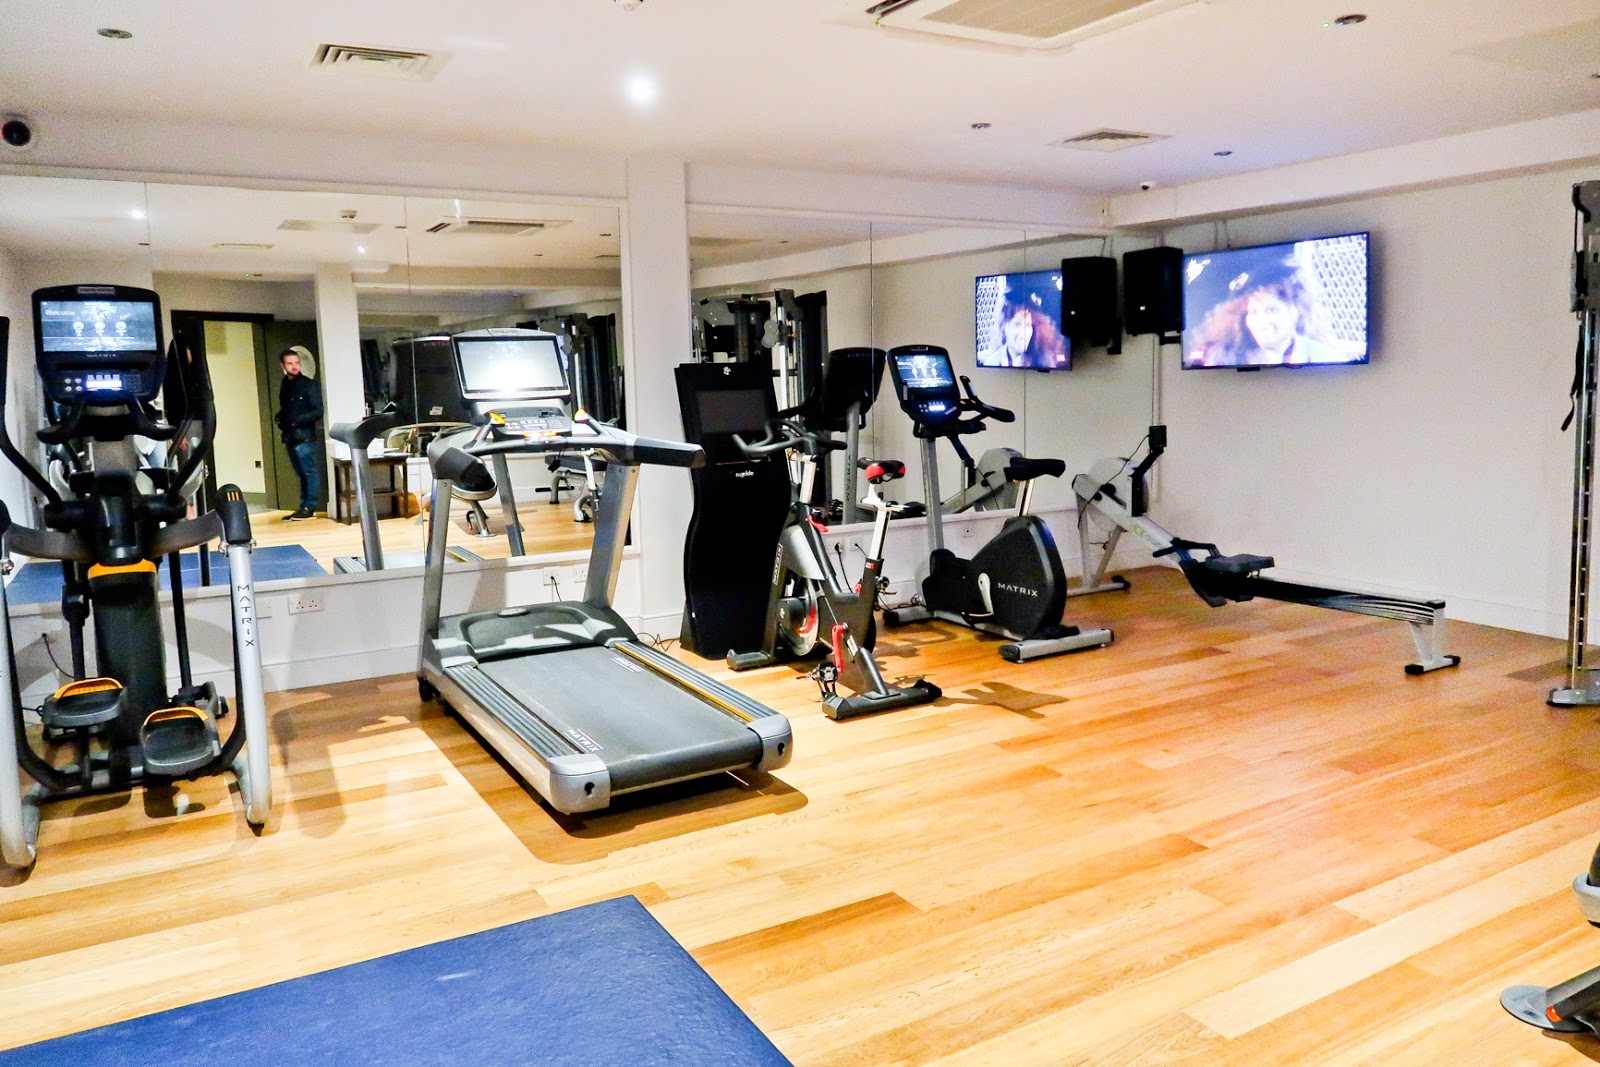 kings head hotel cirencester, kings head hotel review, kings head hotel cotswolds, kings head hotel gym